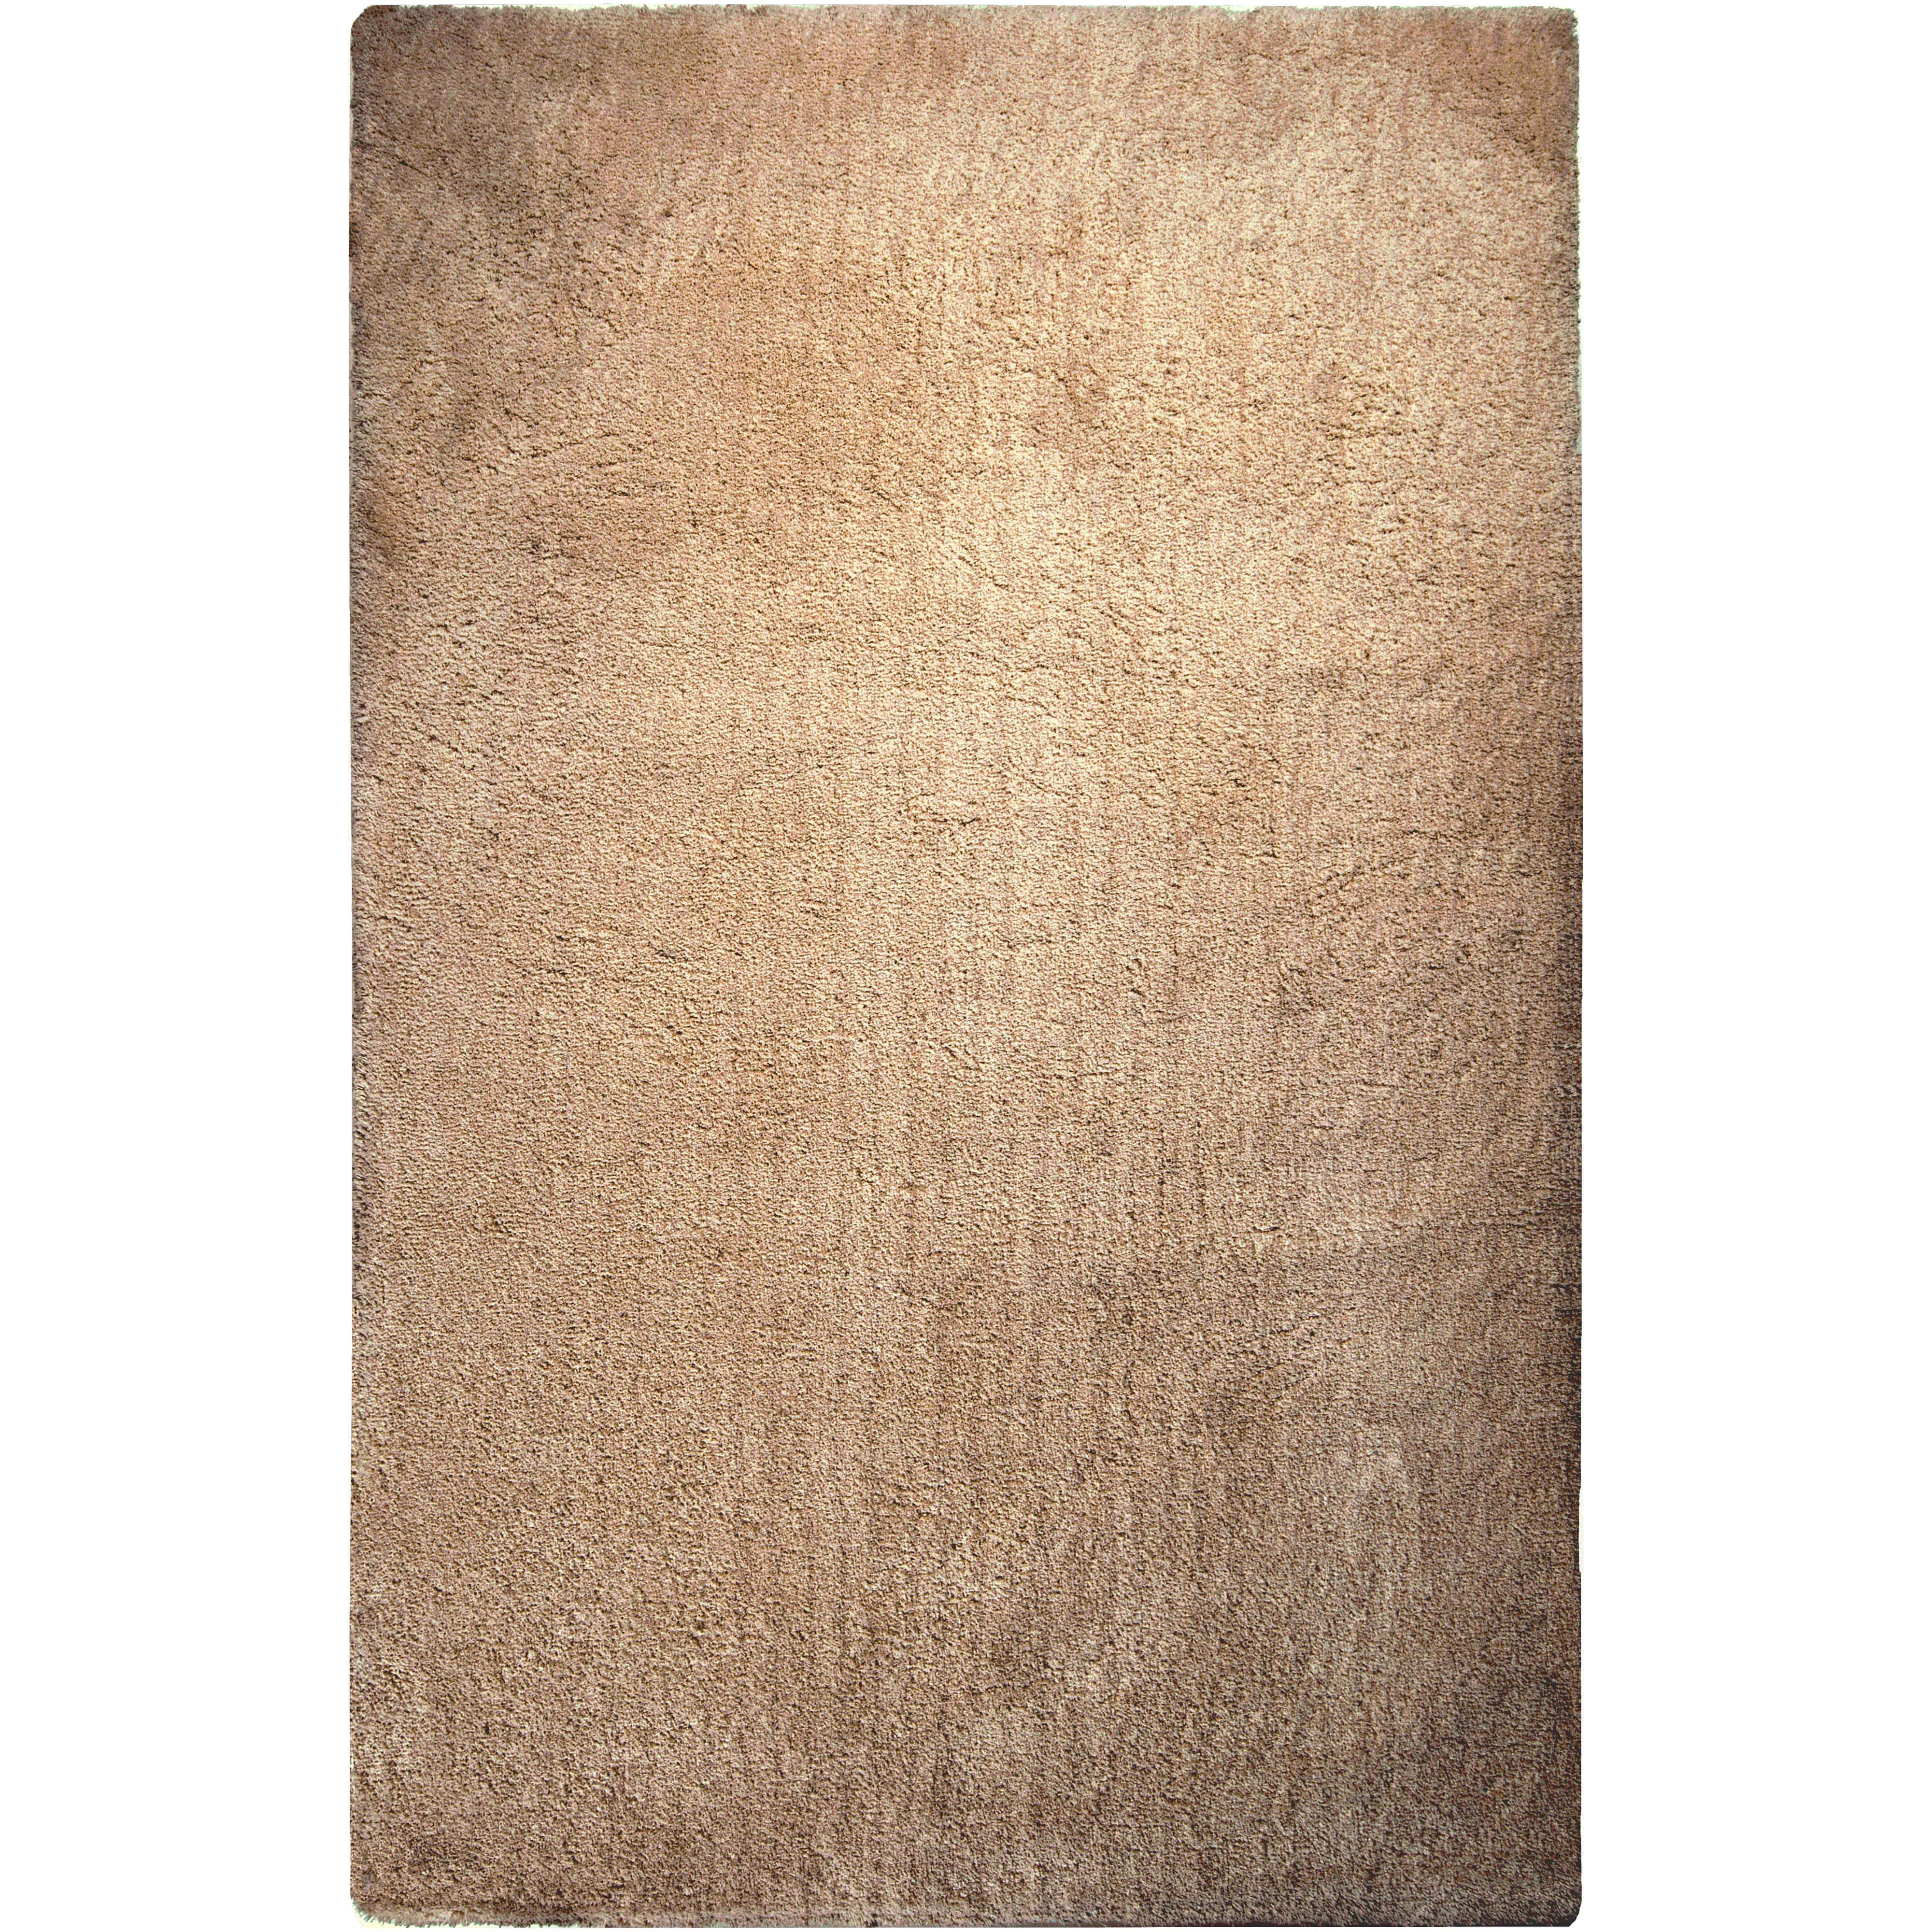 "Surya Rugs Heaven 7'6"" x 9'6"" - Item Number: HEA8006-7696"